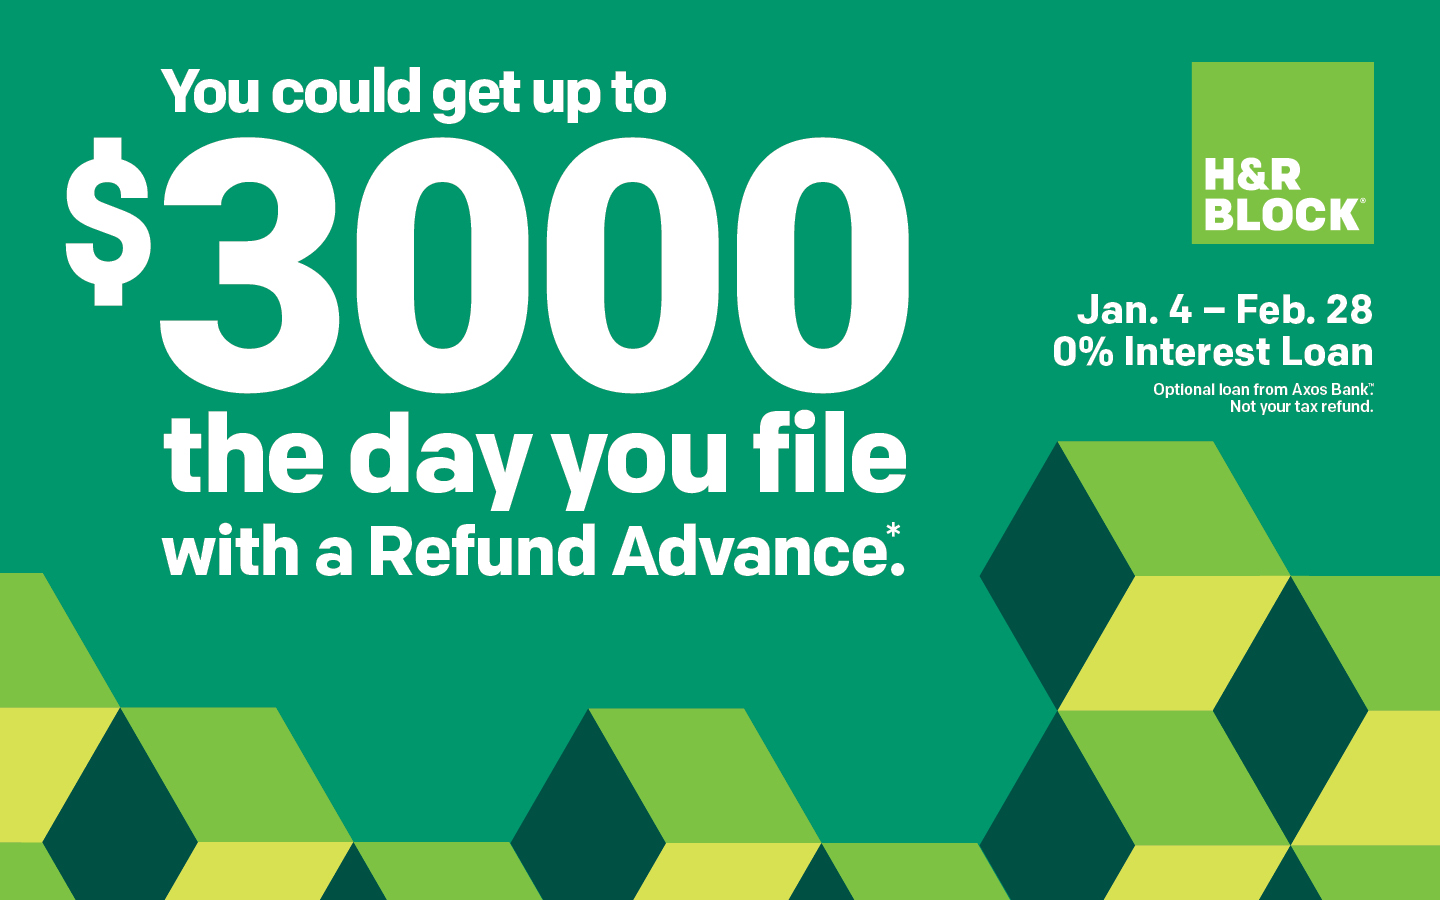 Diy Free Tax Review How To Apply For Refund Advance For 2019 H R Block Newsroom